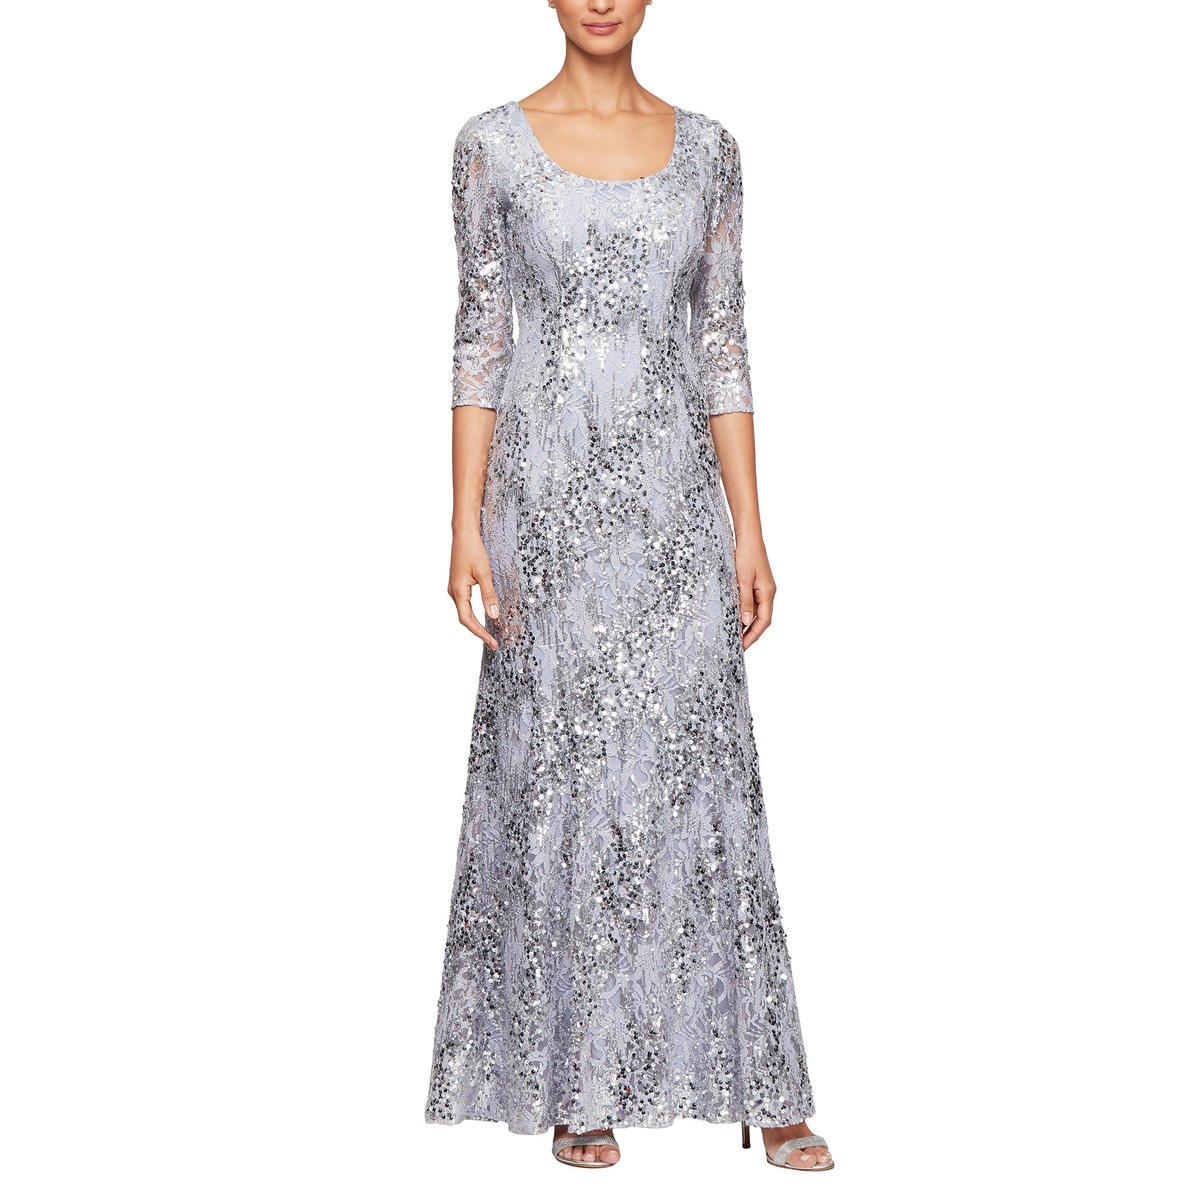 ALEX APPAREL GROUP INC - Lace Sequin A-Line Gown